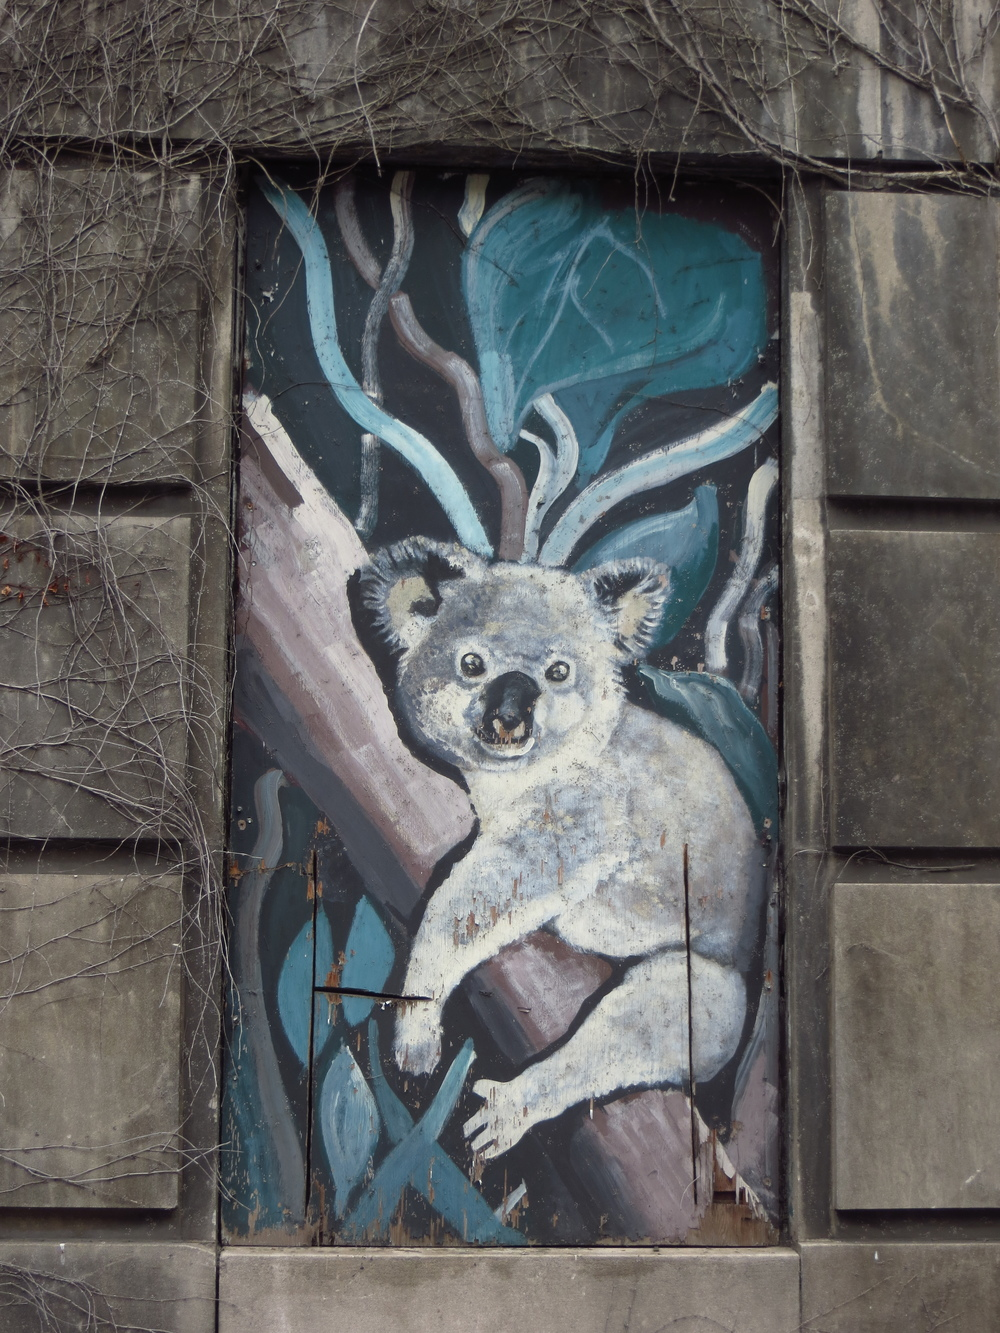 Koala on Boarded-Up Window of Former Psychiatric Hospital